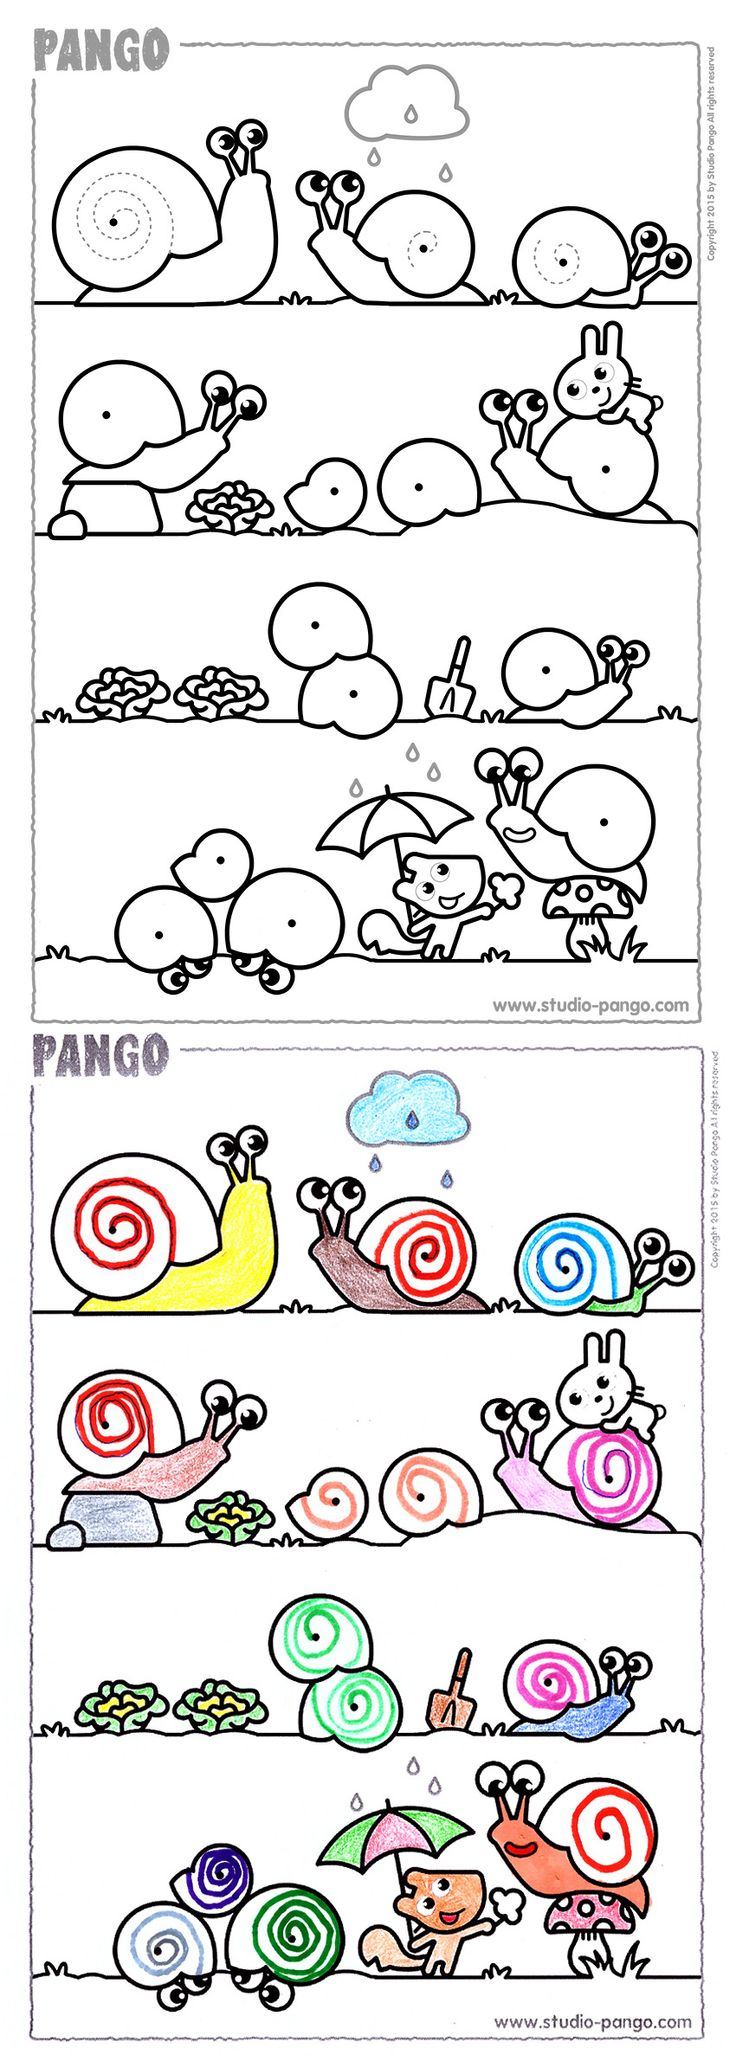 Garden drawing pictures - Snails In The Garden Drawing Coloring Spirals